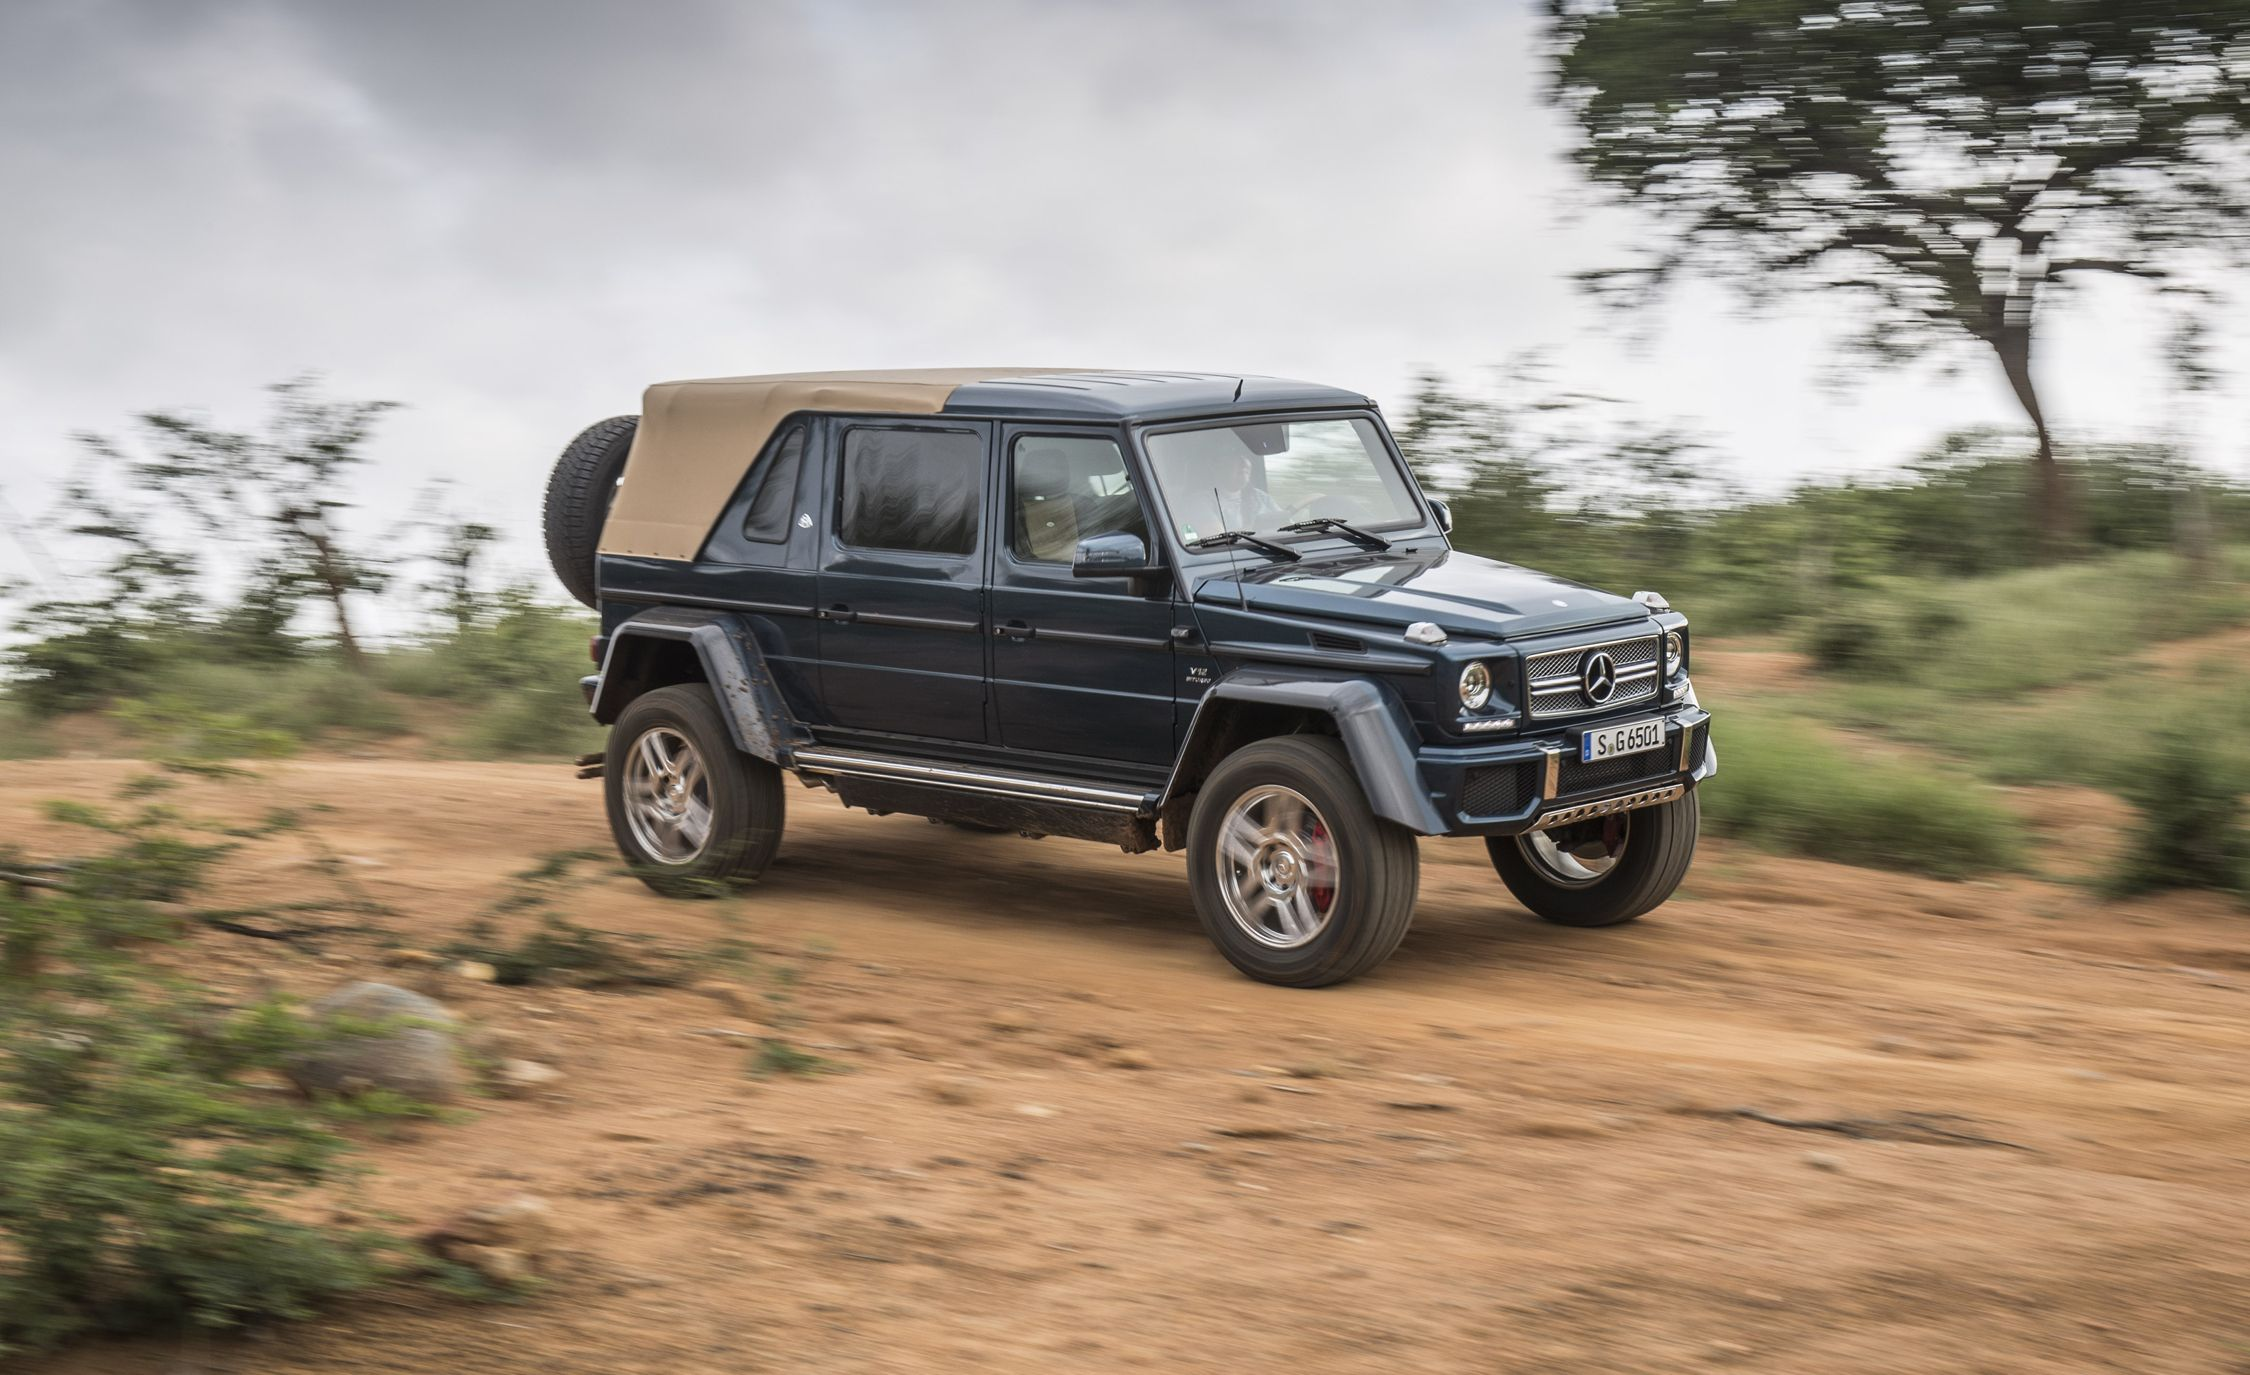 2018 Mercedes Maybach G650 Landaulet First Ride 8211 Review 8211 Car And Driver